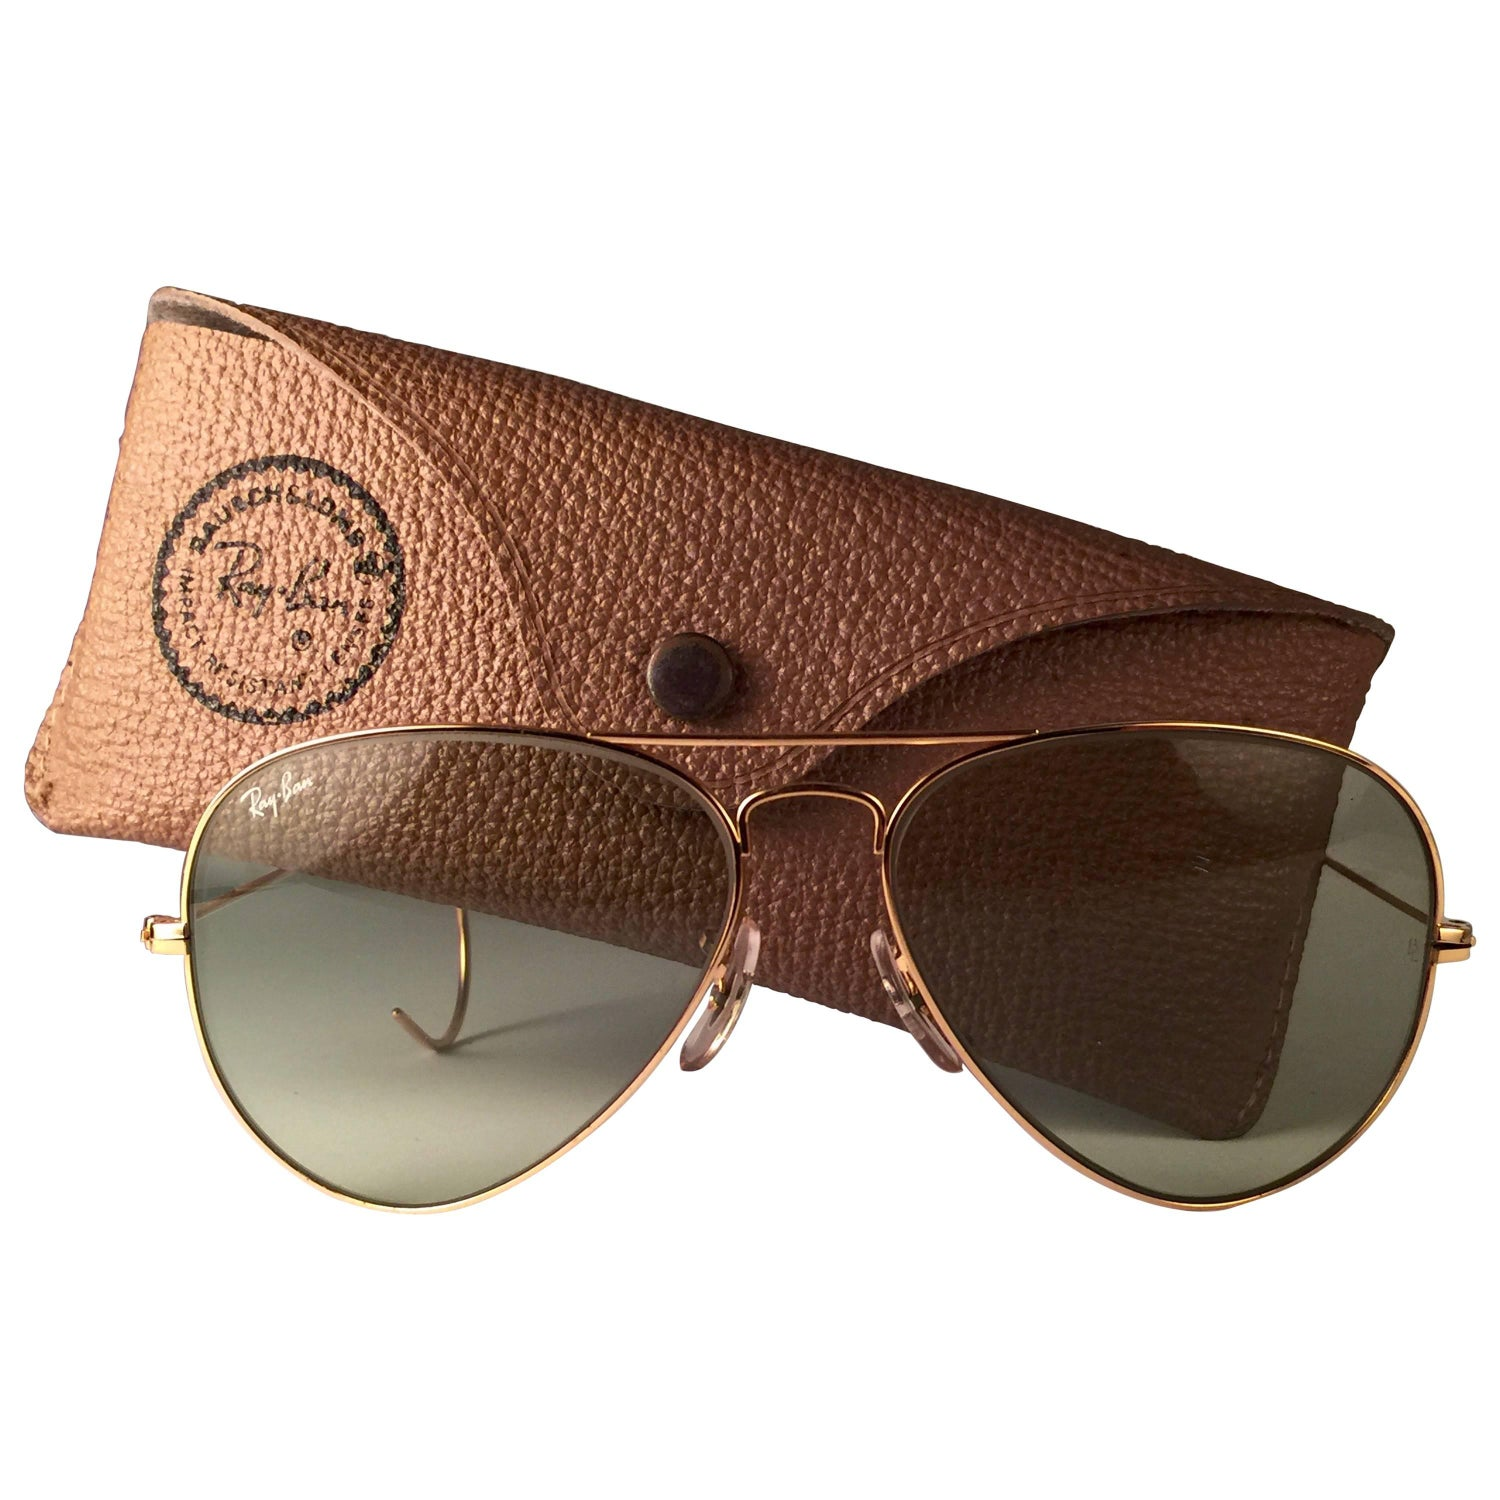 7456c6a65cd New Vintage Ray Ban Aviator 58Mm Gold Green Changeable Lenses B L Sunglasses